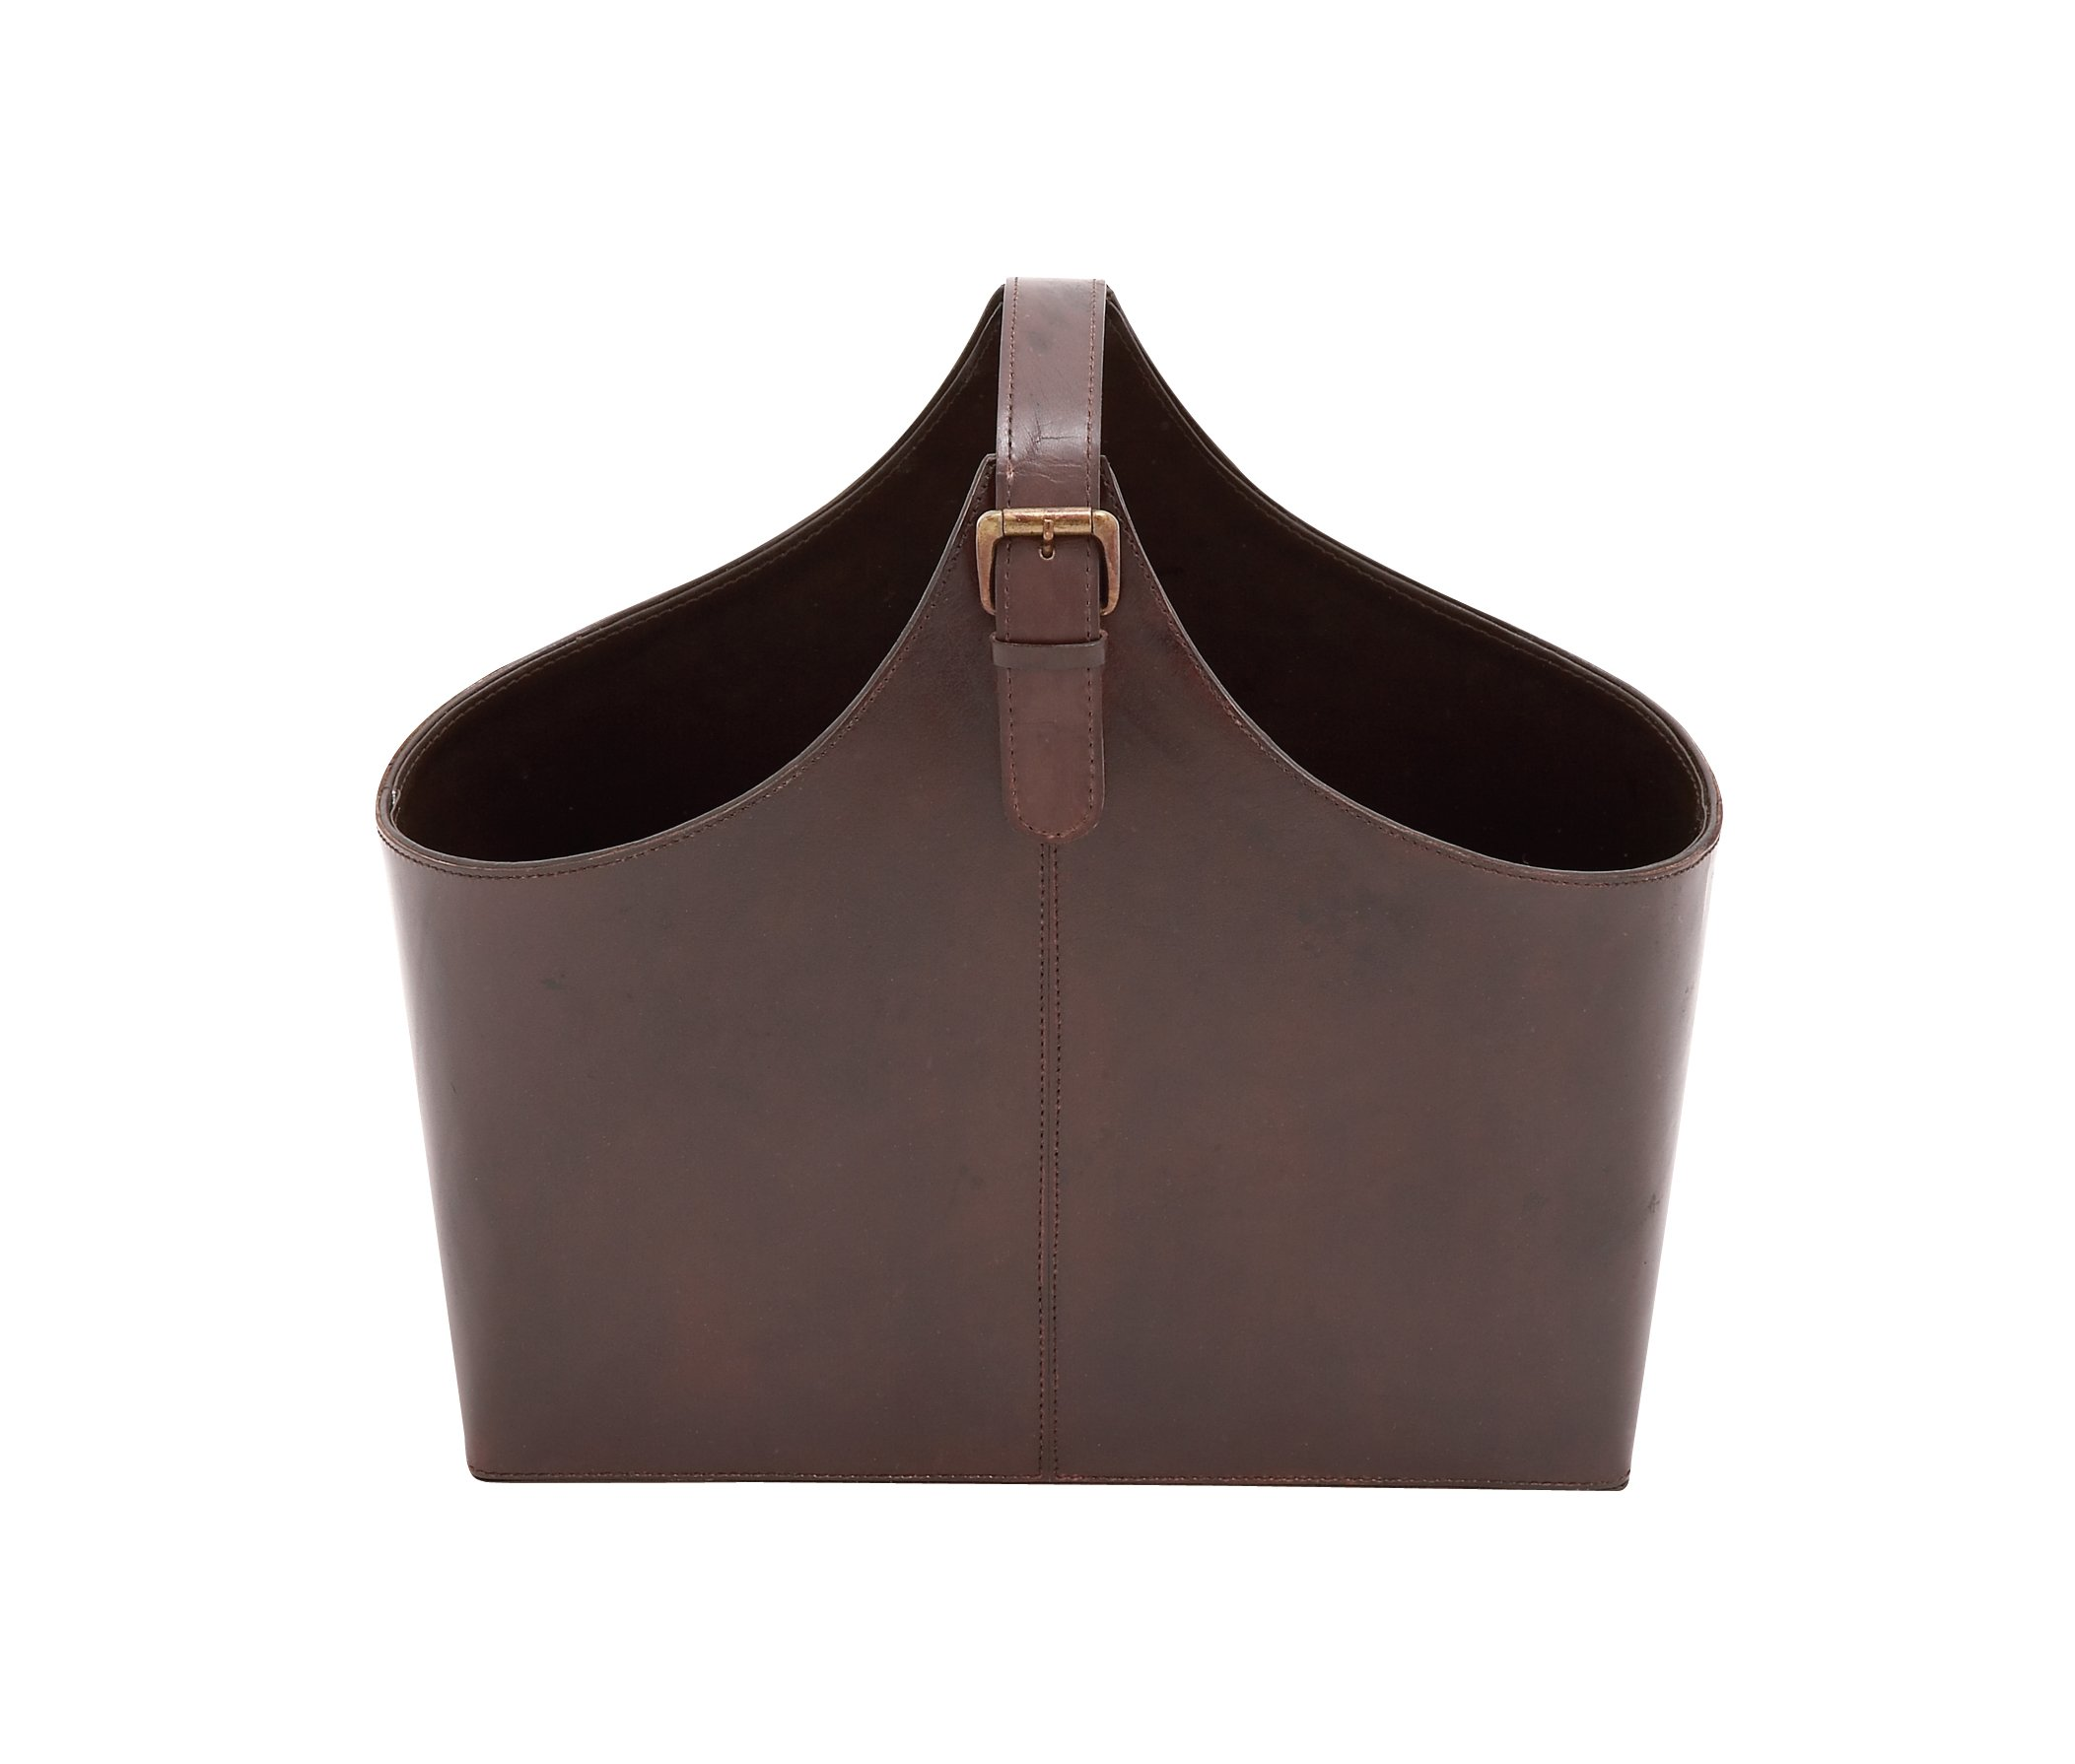 Deco 79 Wood Real Leather Magazine Holder, 16 by 14-Inch, Dark Brown by Deco 79